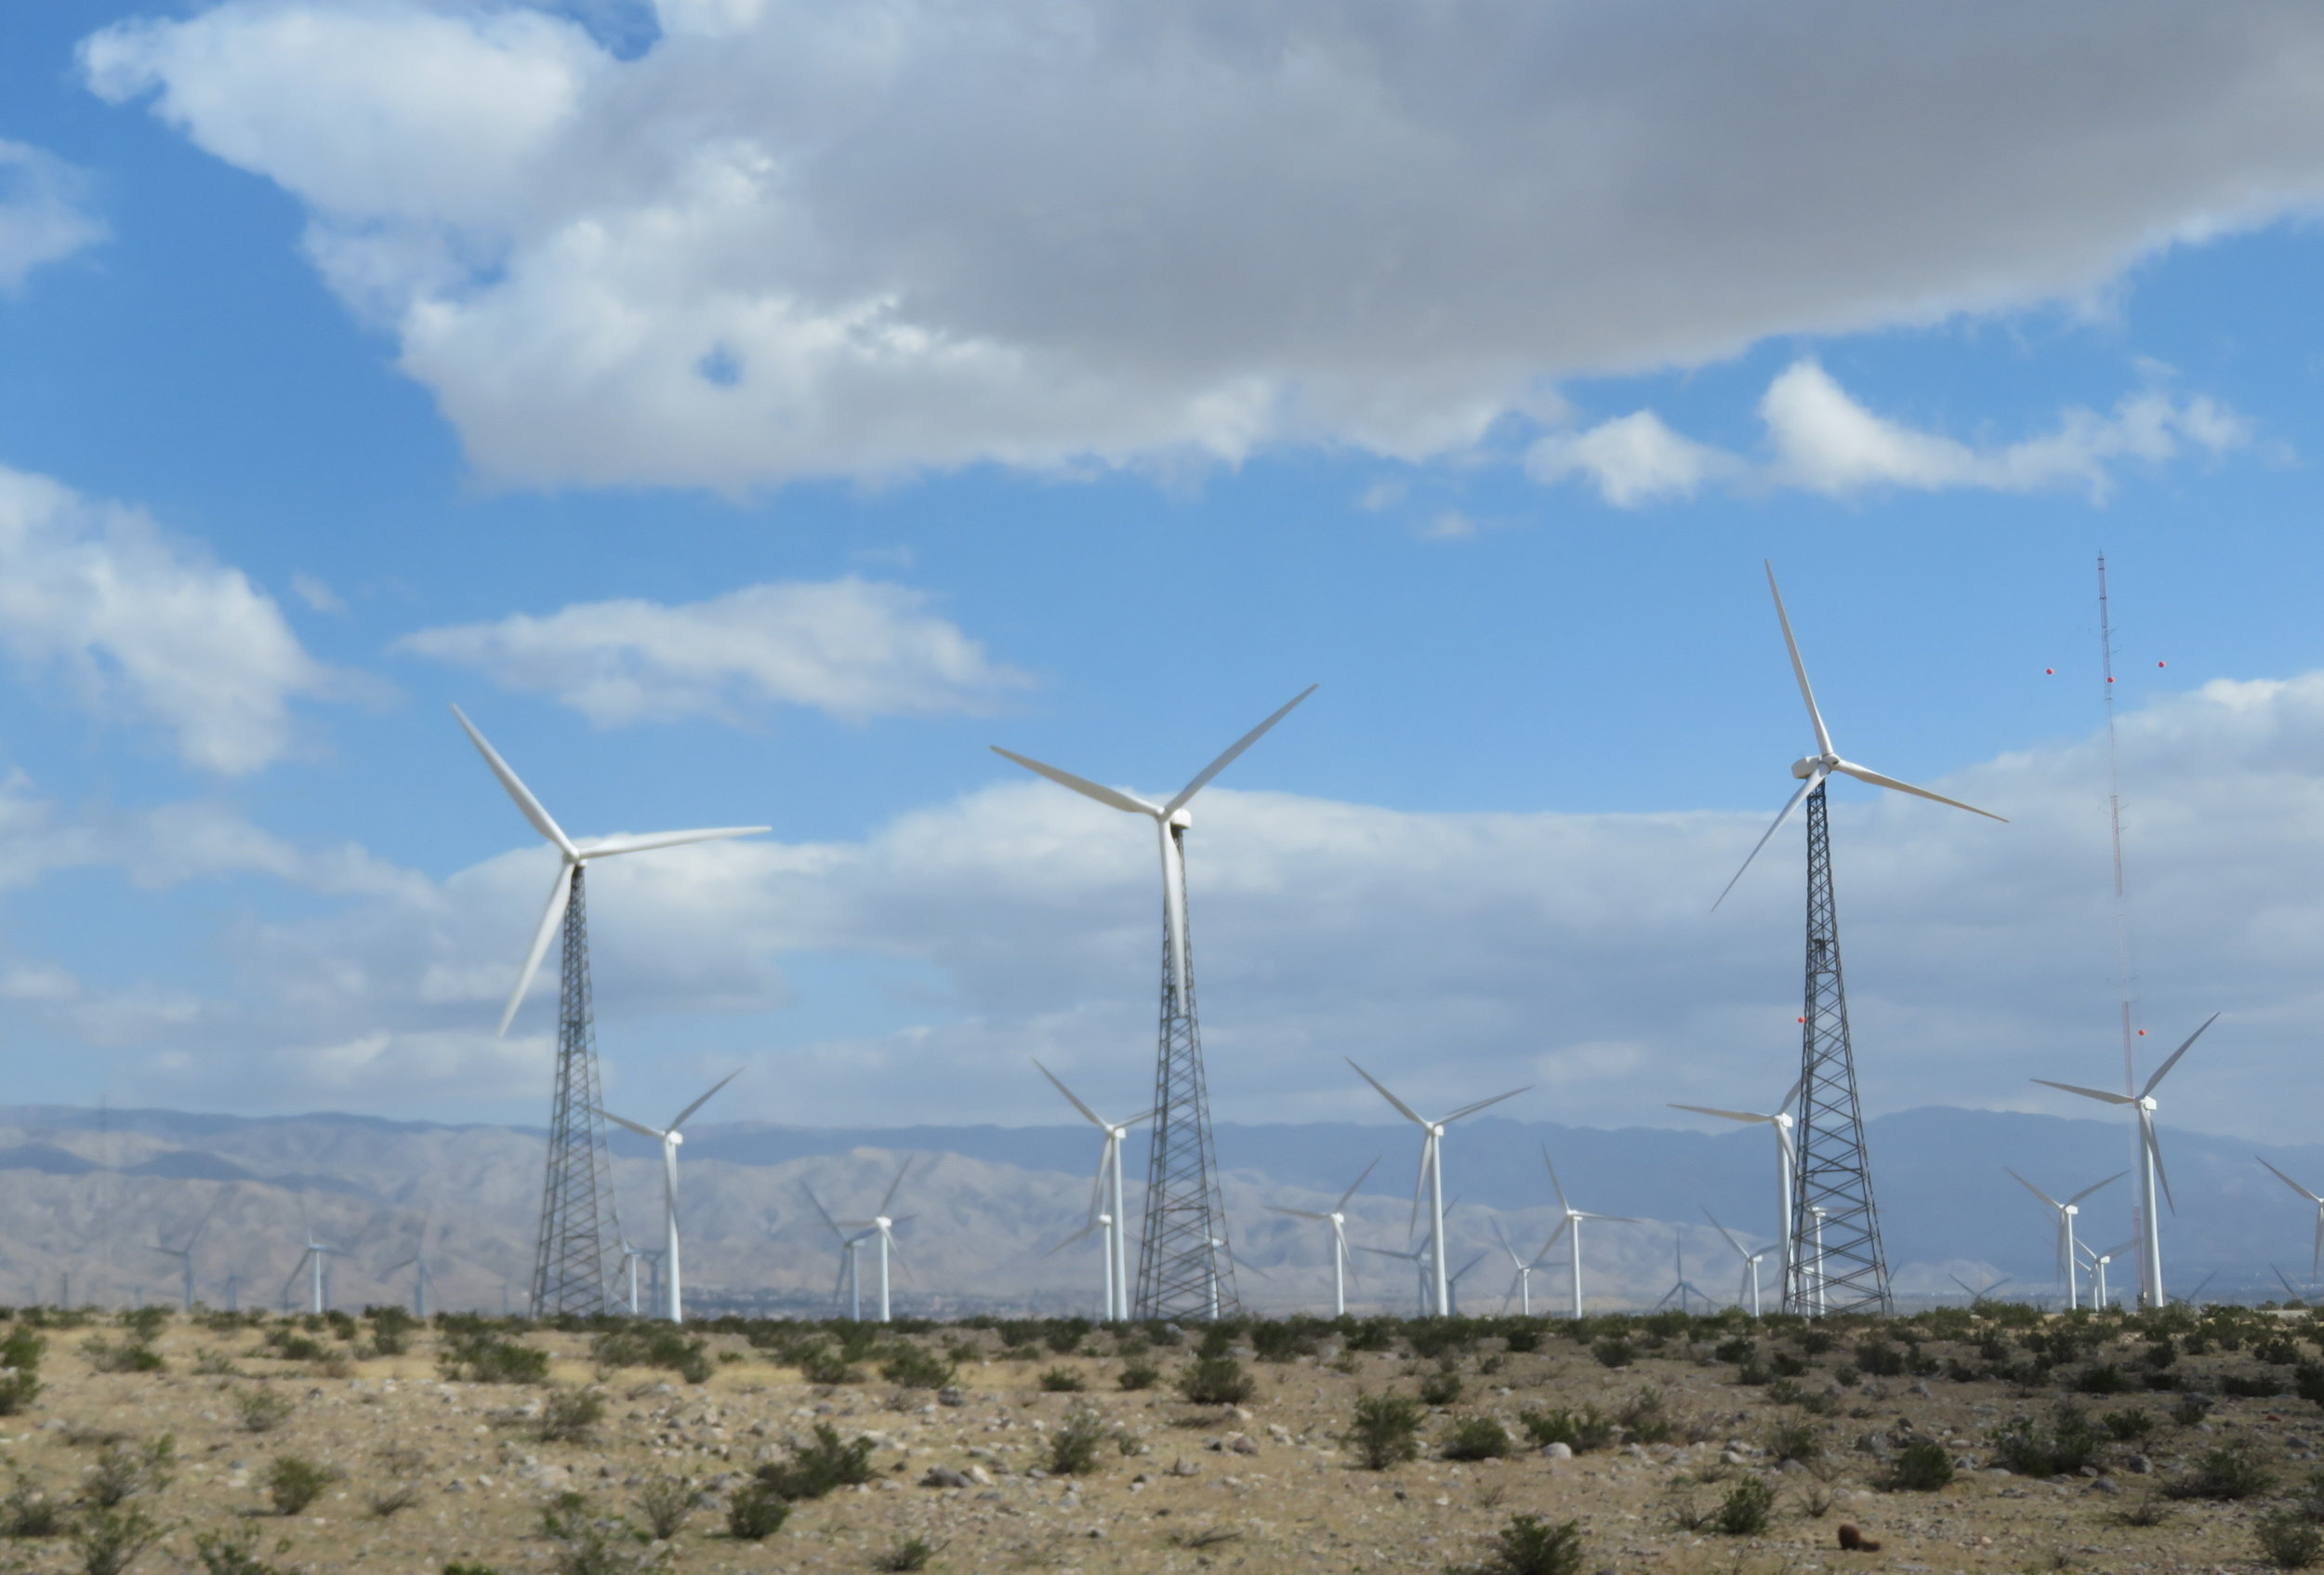 Wind turbines as far as the eye can see